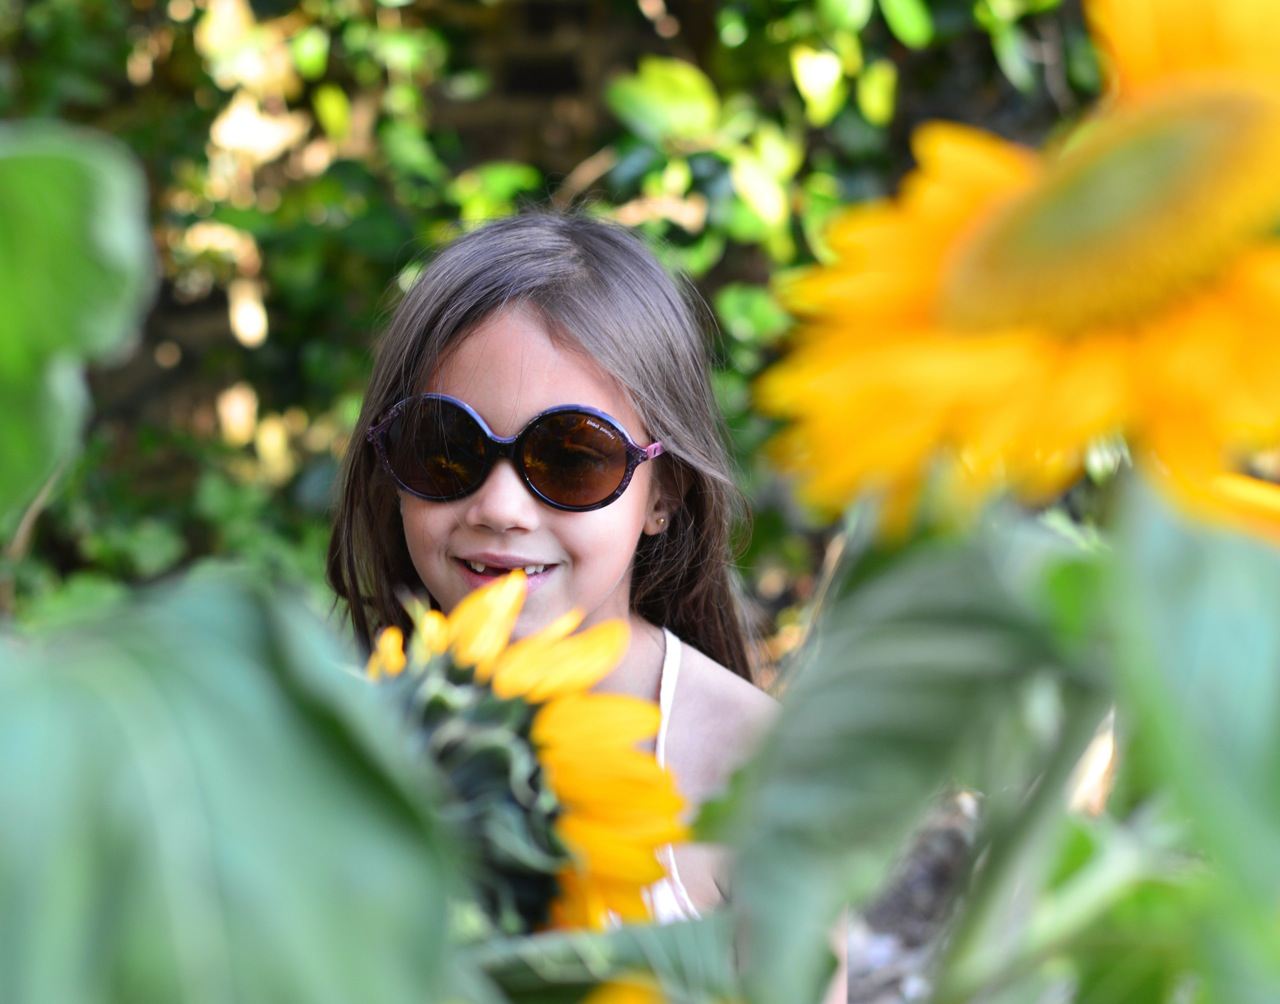 kids sunglasses uv protection